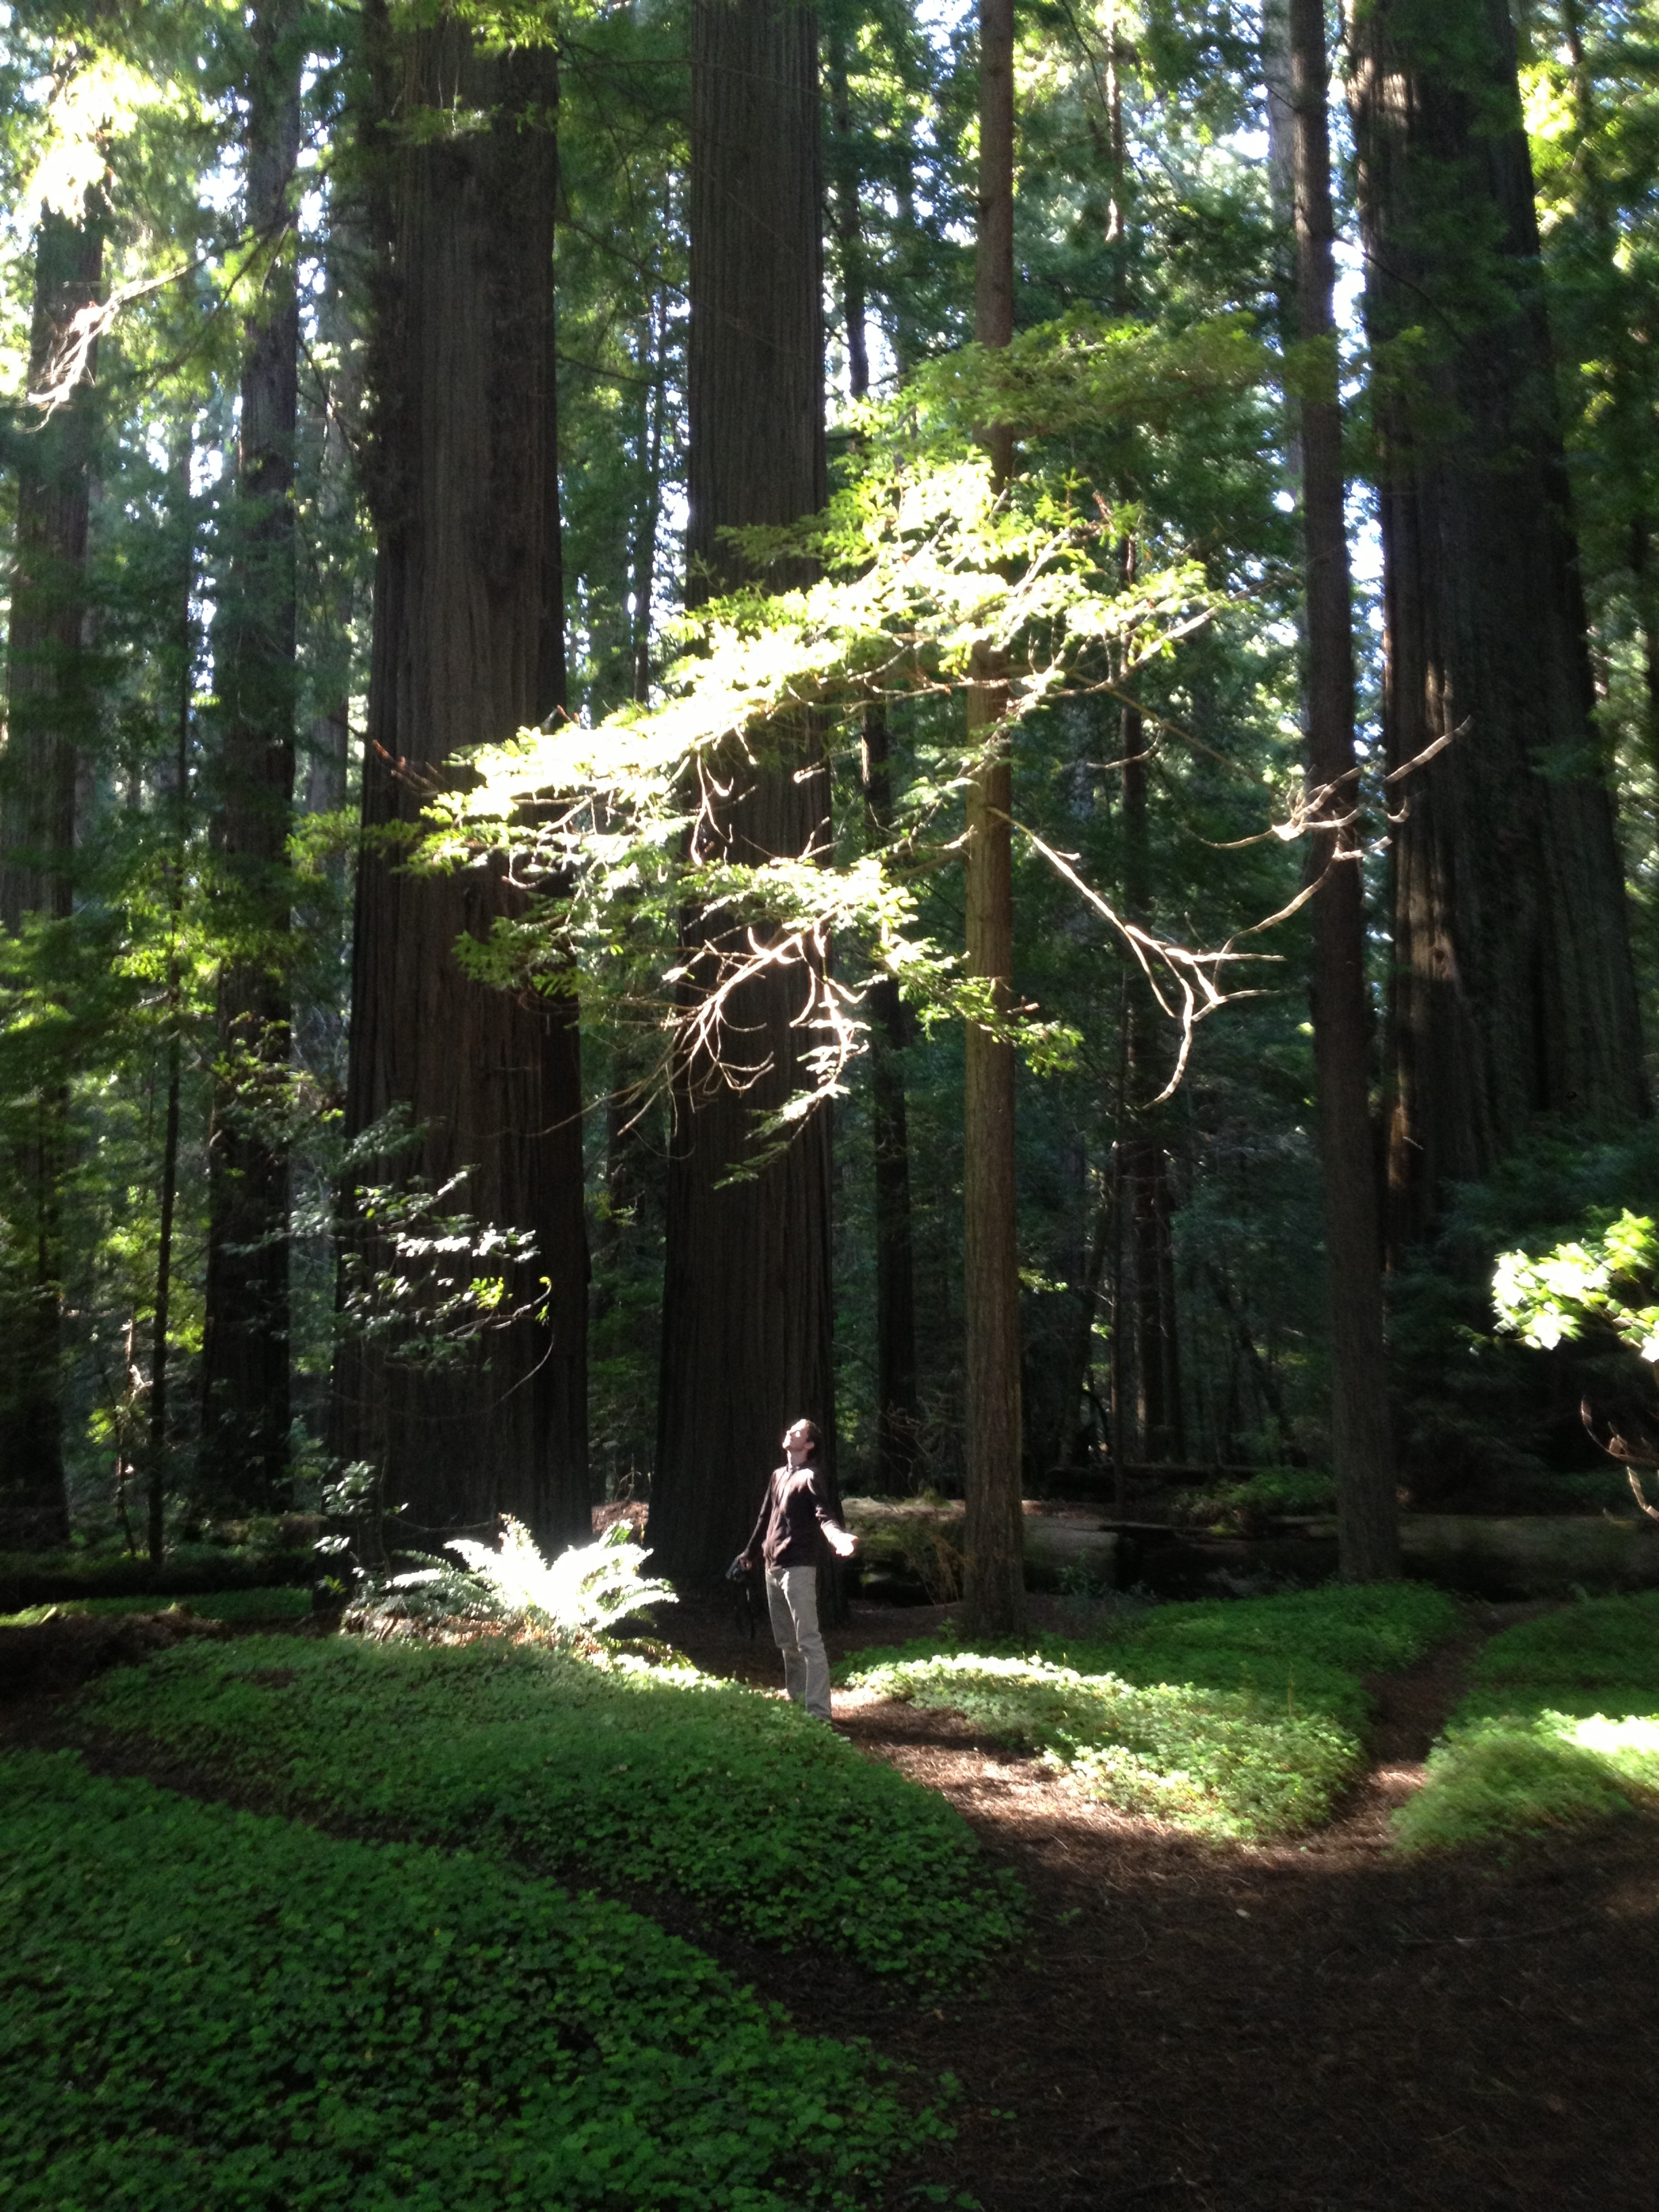 Ian Worrel among the trees. This spot was heavily used as reference for the forests of gravity falls.